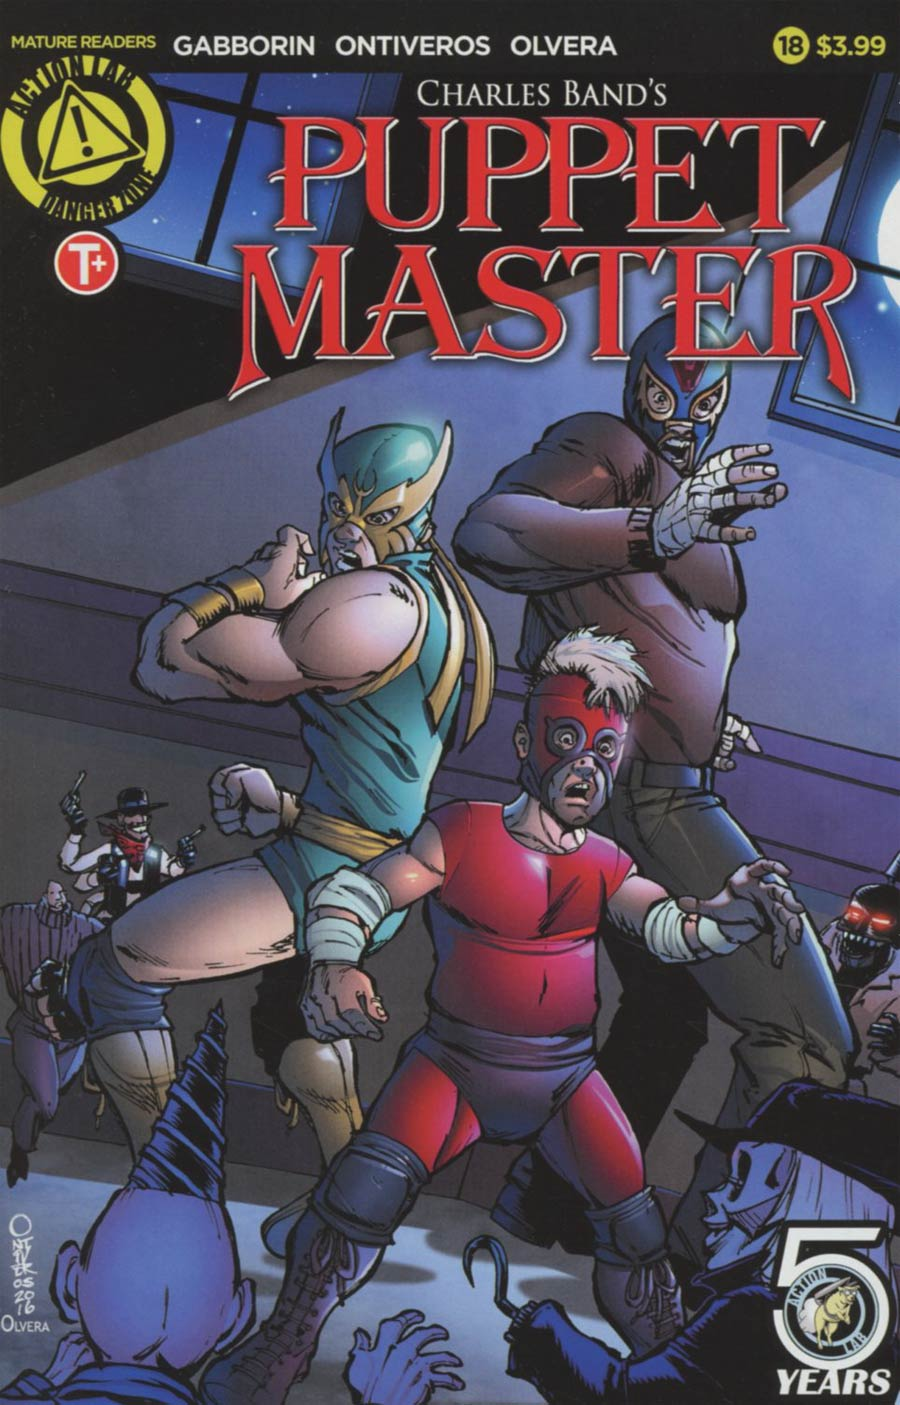 Puppet Master #18 Cover A Regular Antonio Ontiveros Color Cover